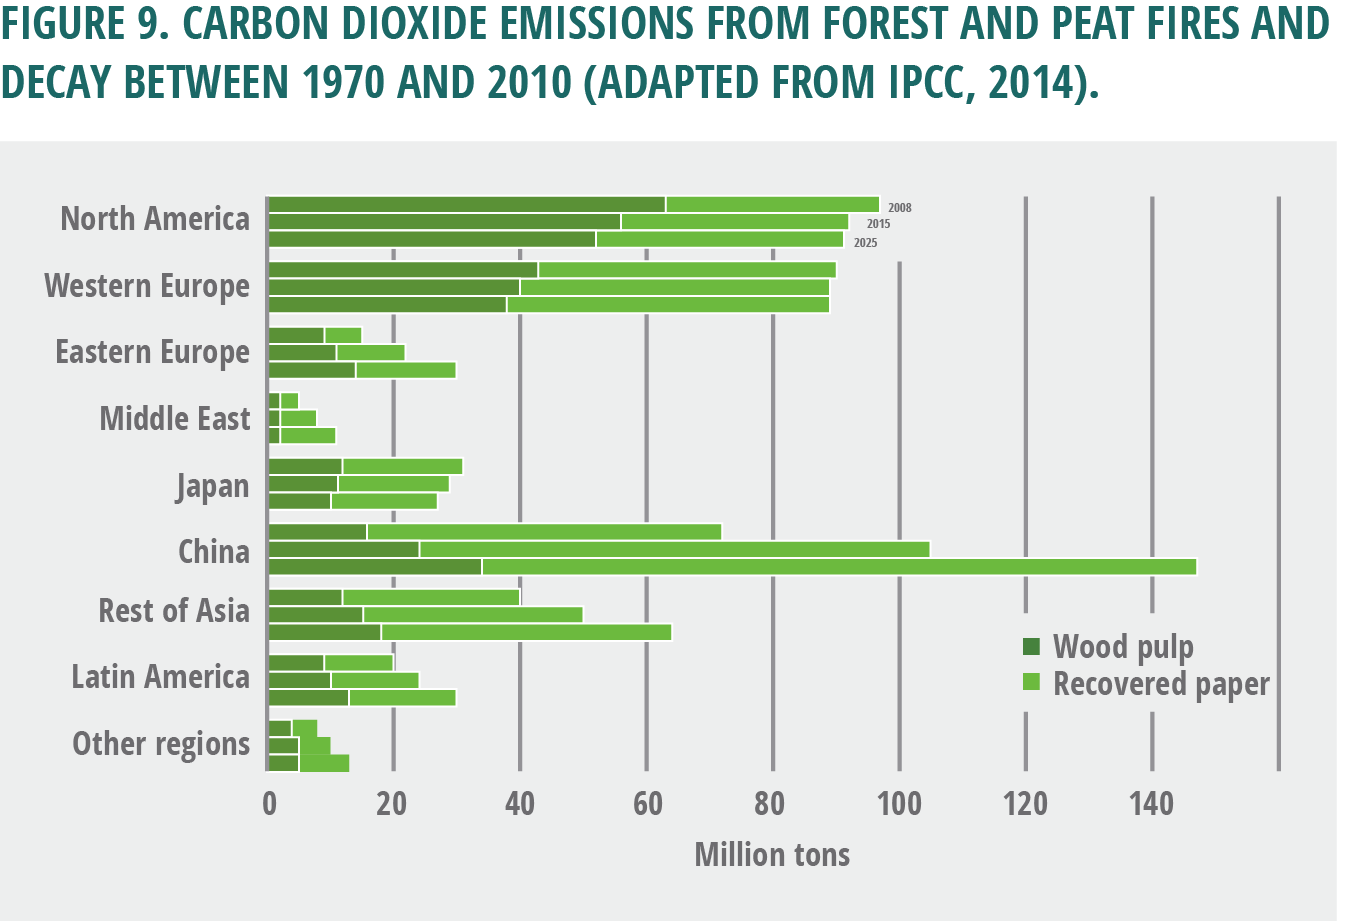 hight resolution of carbon dioxide emissions from forest and peat fires and decay between 1970 and